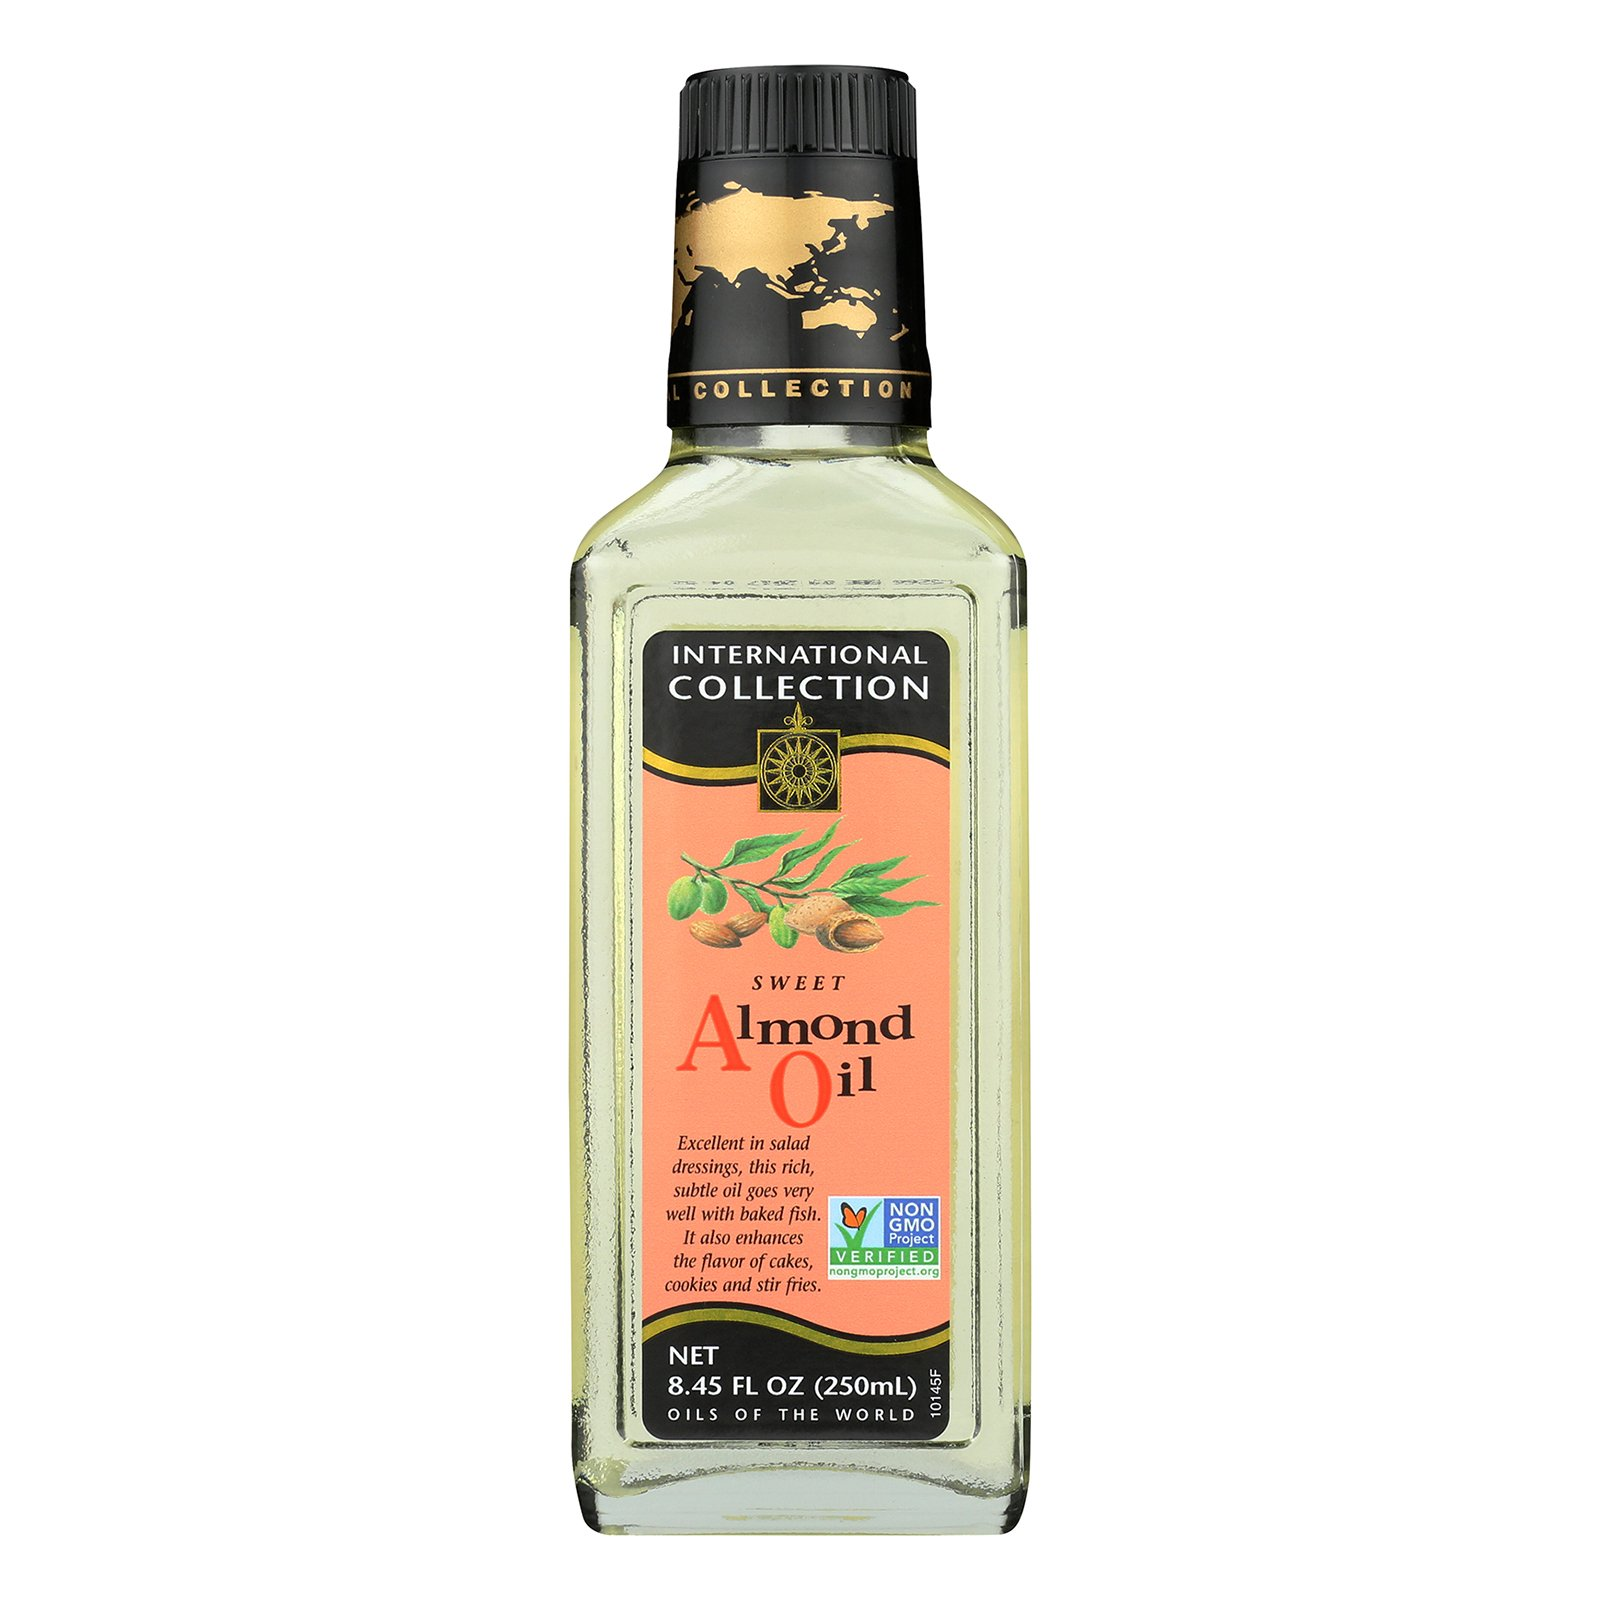 International Collection Almond Oil Sweet Case Of 6